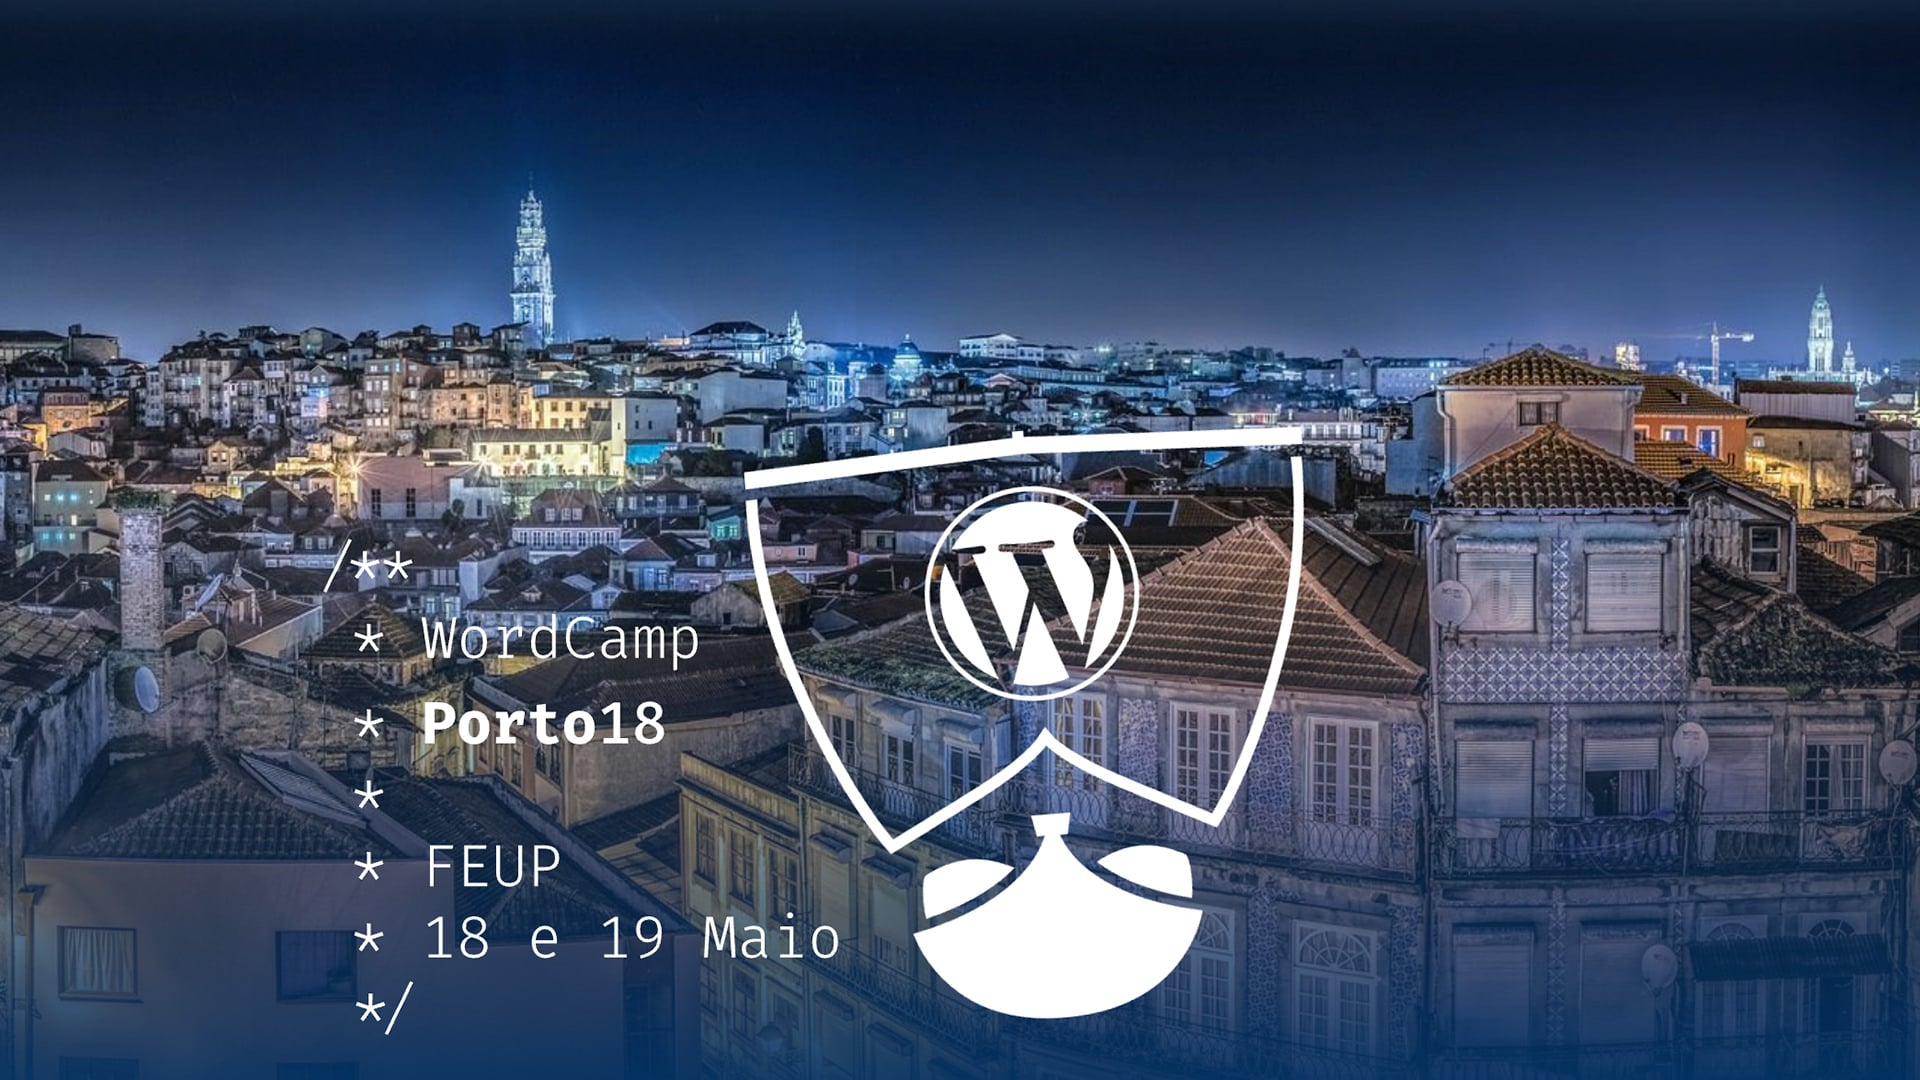 Estivemos no Wordcamp Porto 2018